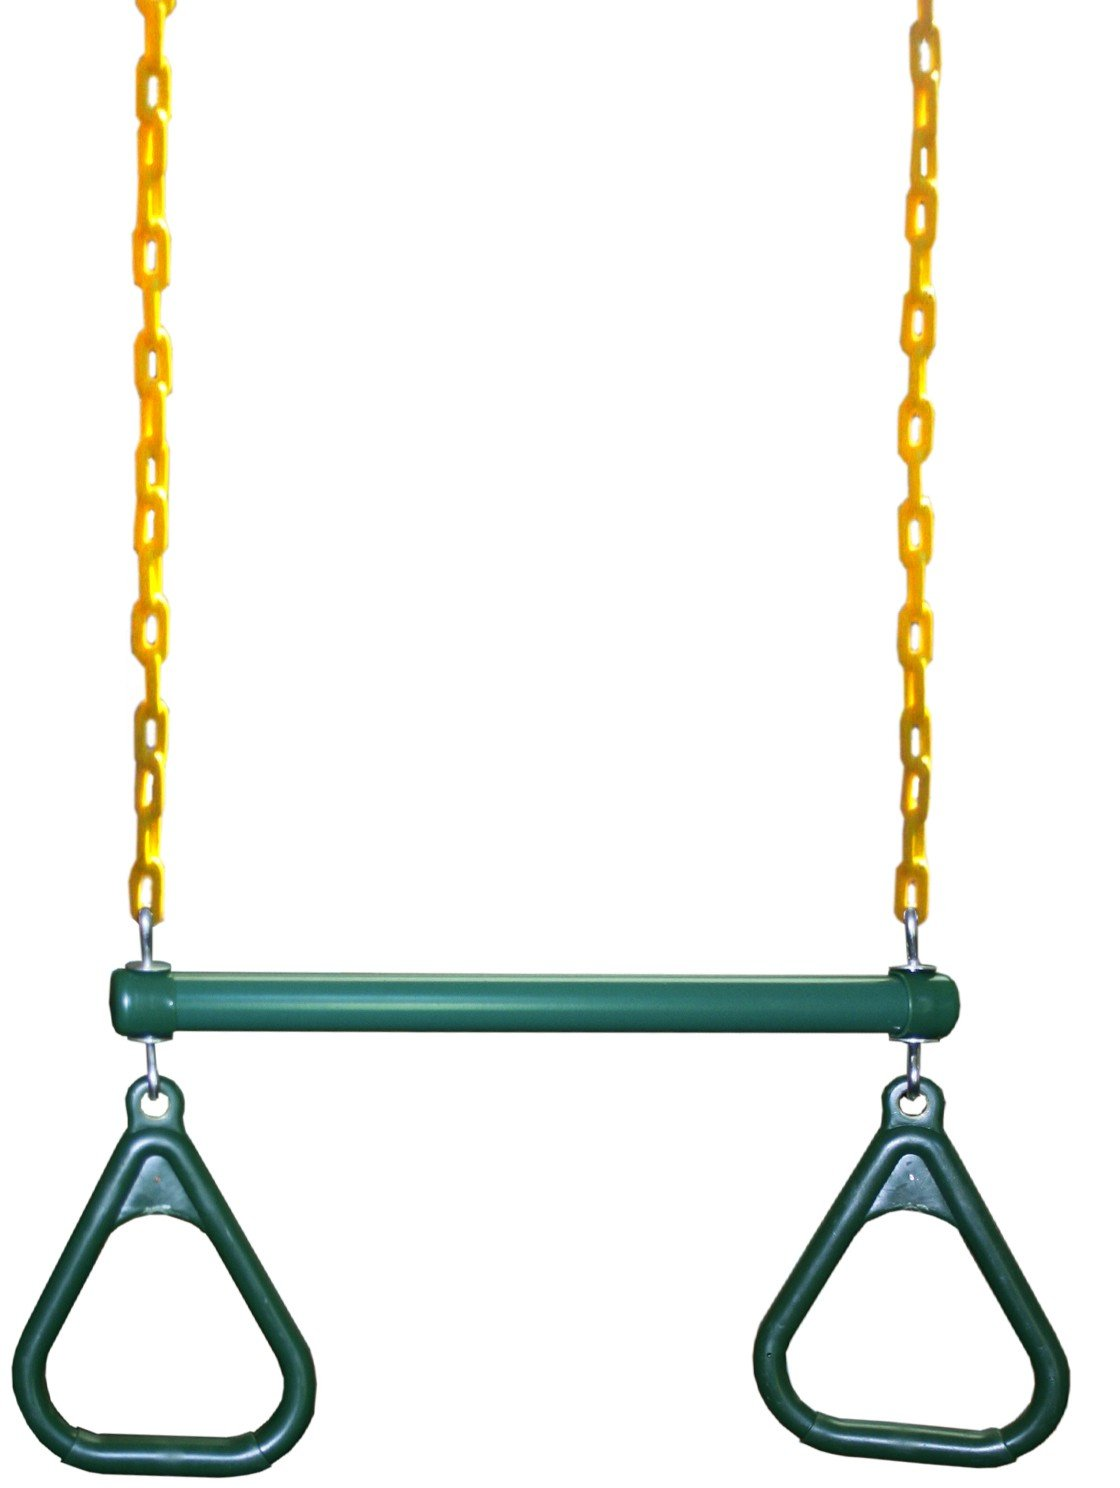 Eastern Jungle Gym Heavy-Duty Ring Trapeze Bar Combo Swing , Large 20 Trapeze Bar with Coated Swing Chains 43 Long CRTCC